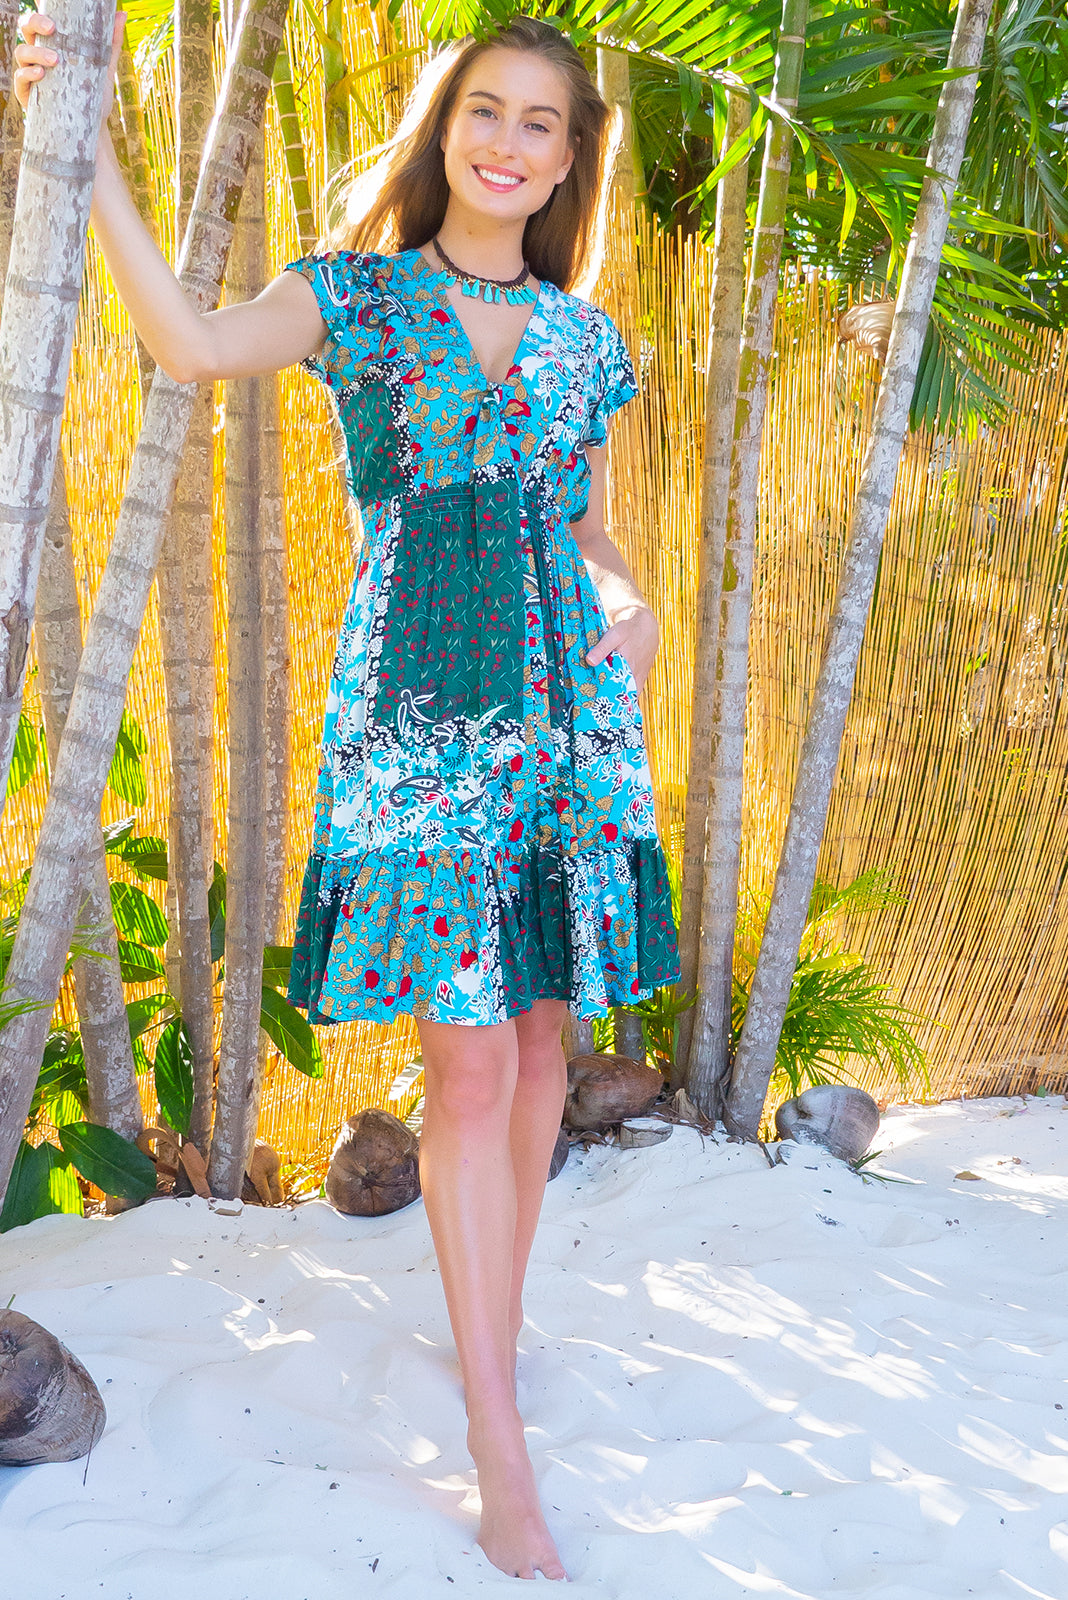 Stella Skies Patchwork Dress features elasticated empire line with a cap sleeve and deep v neck the fabric is a soft woven rayon in a bold and fun bohemian inspired patchwork print